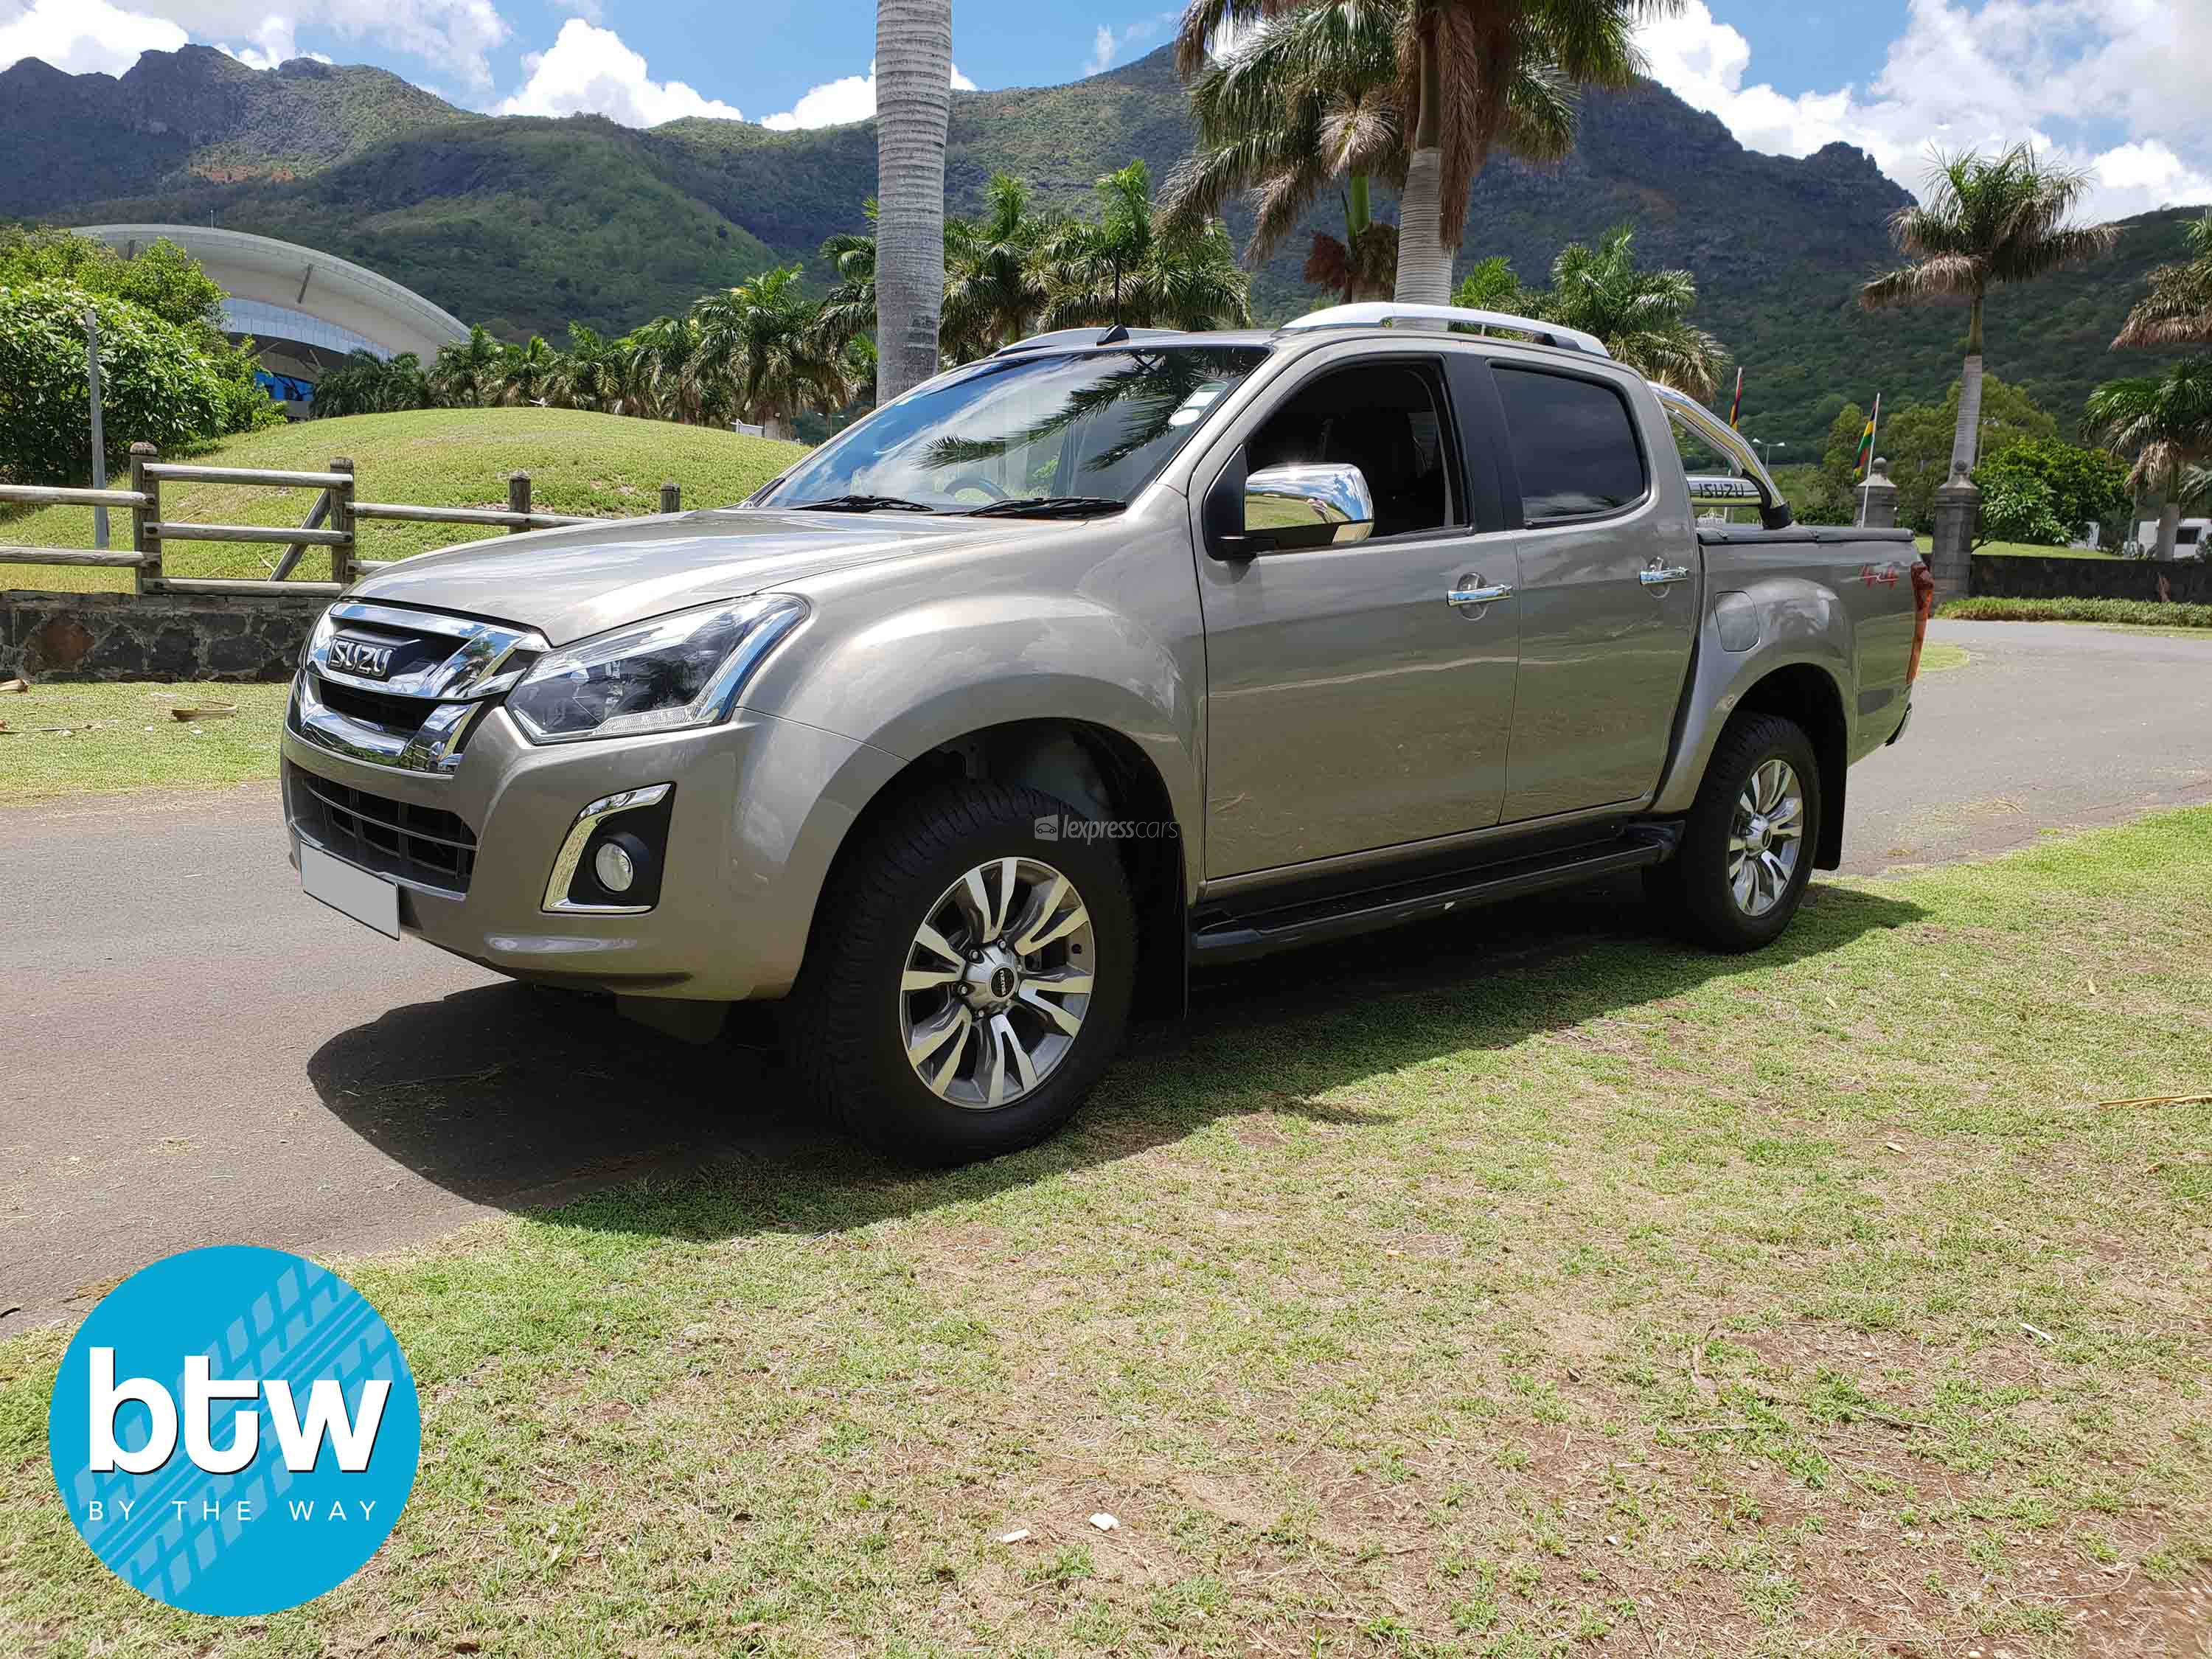 dealership second hand isuzu dmax 2018 - lexpresscars.mu